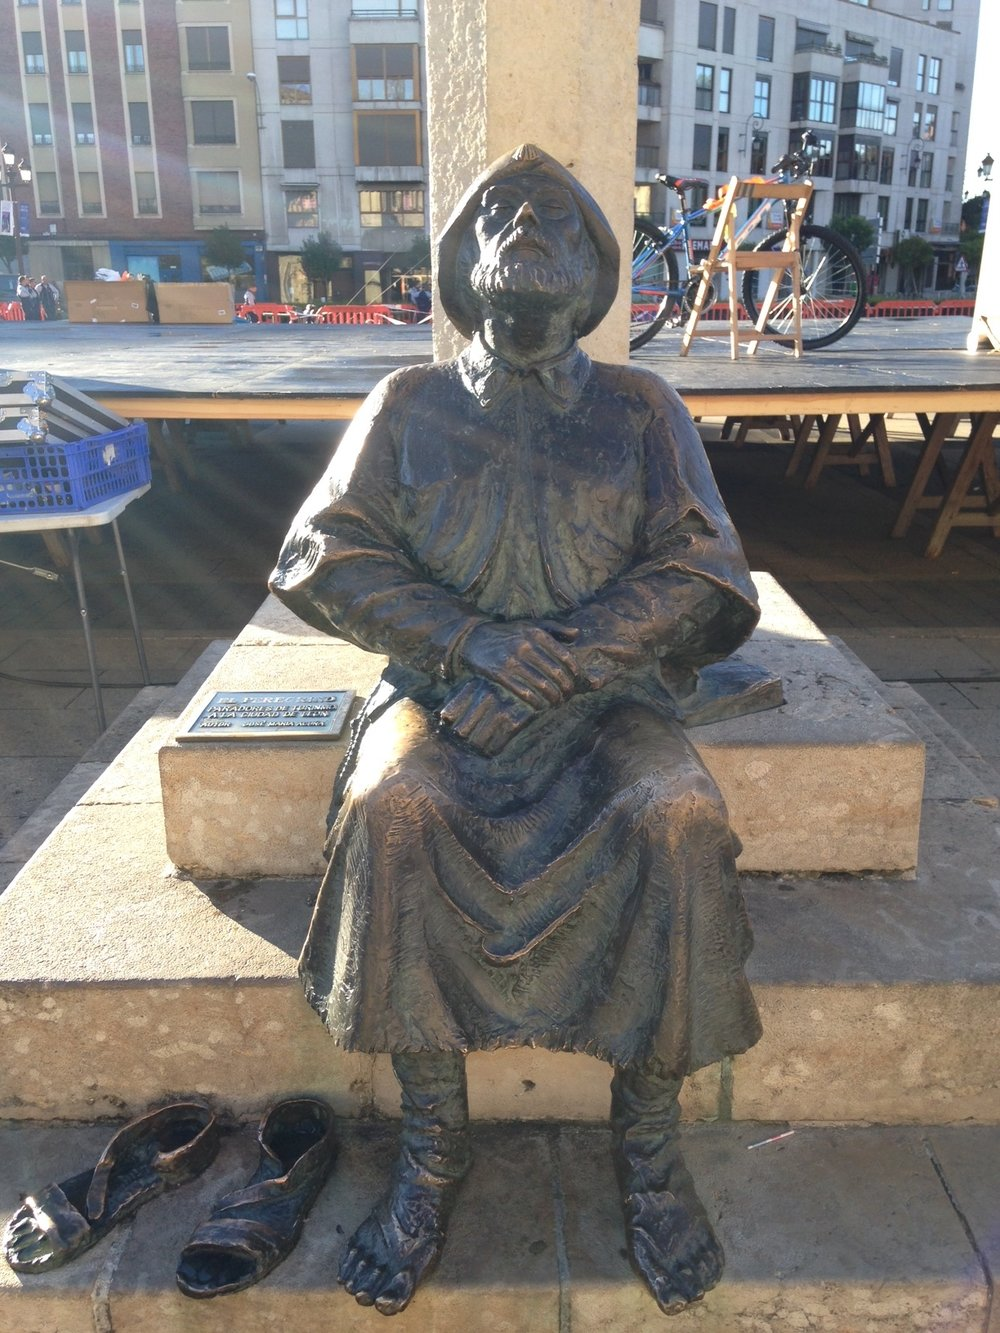 In front of the parador, another statue of a weary pilgrim.